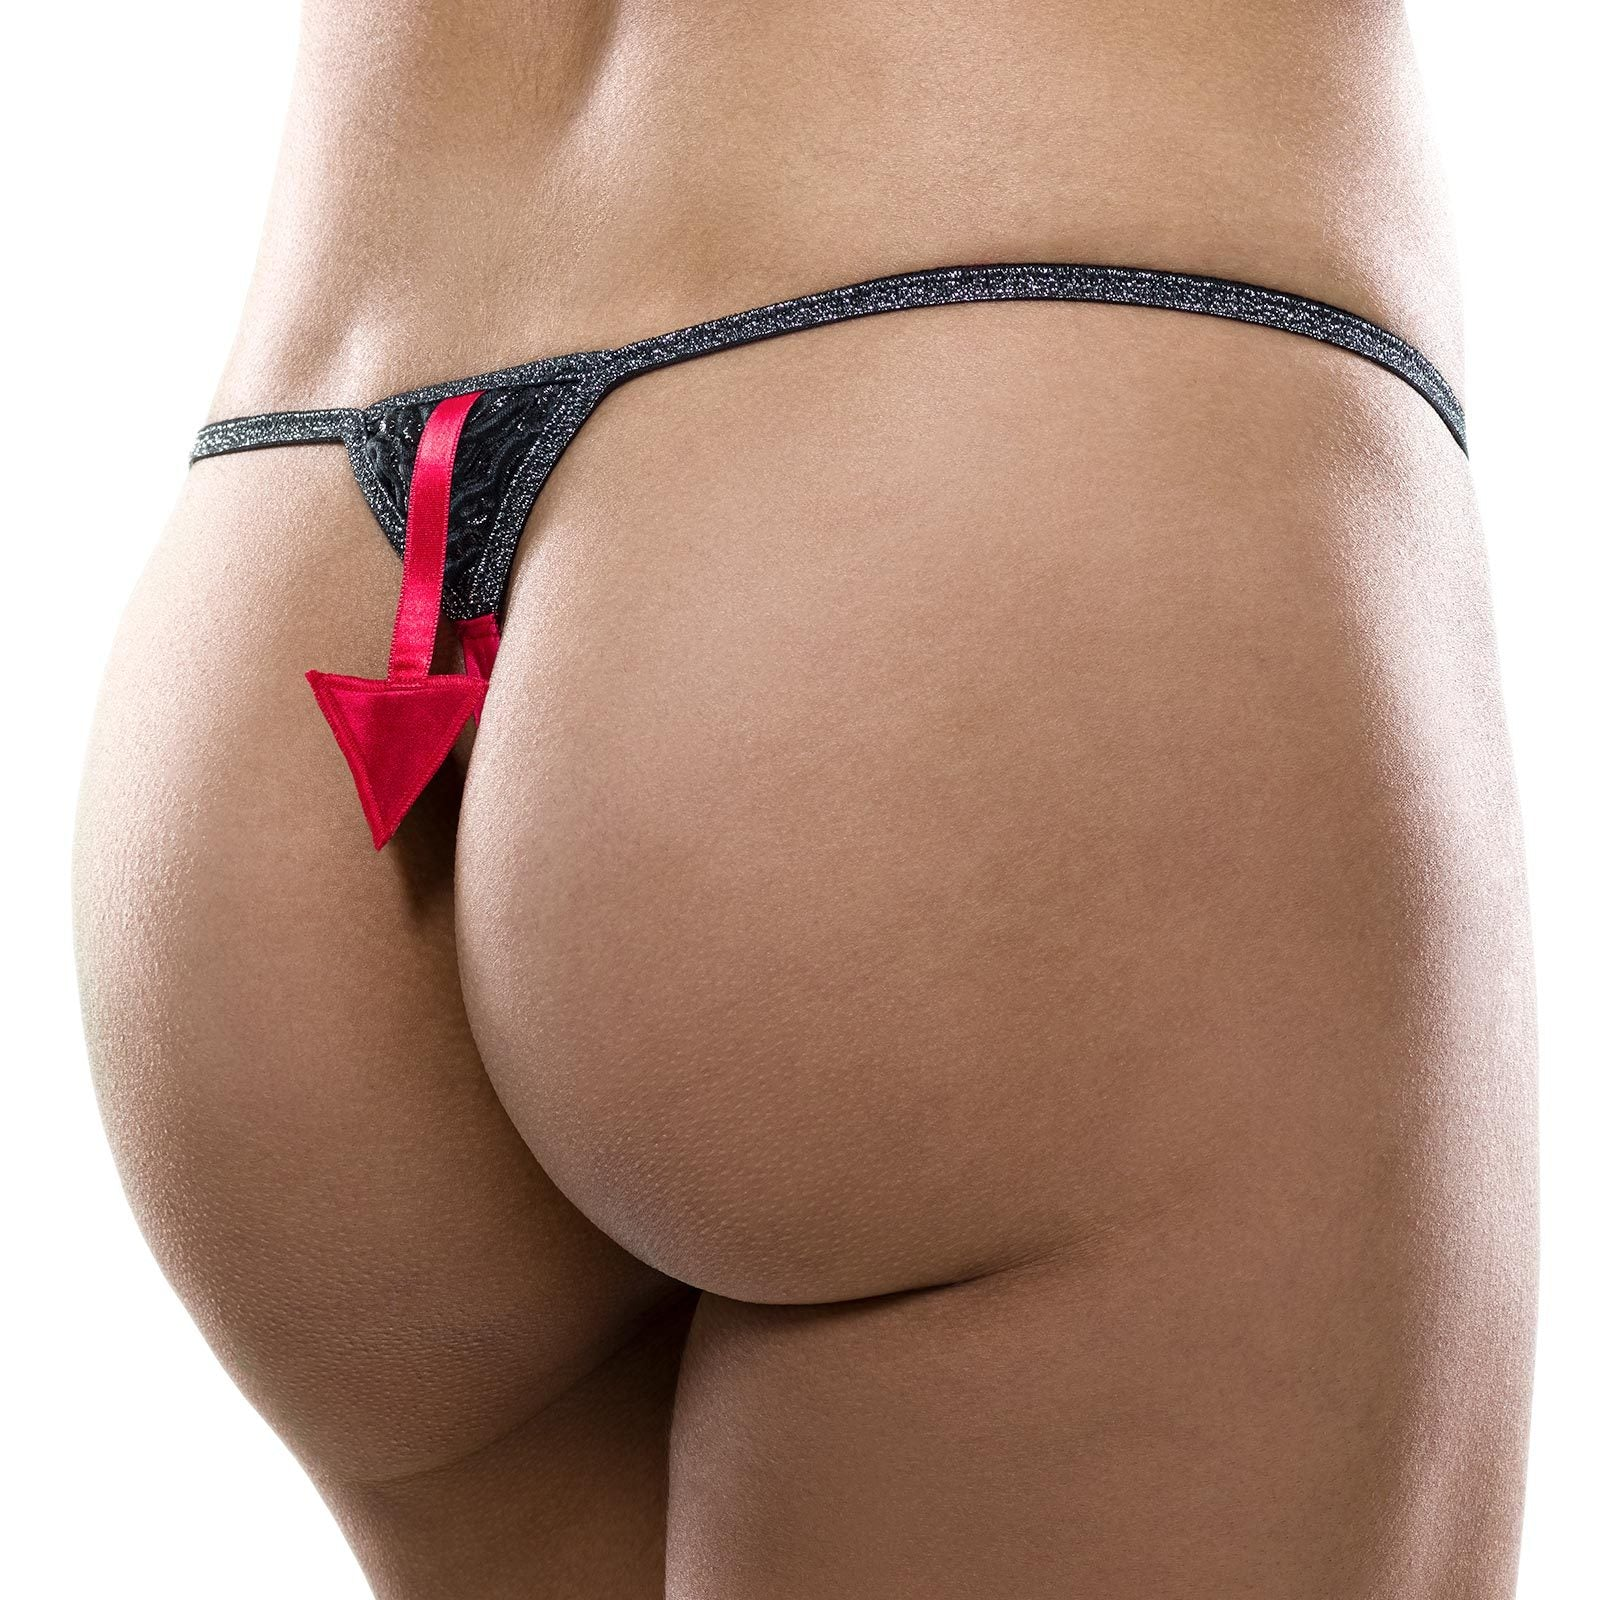 RED DEVIL G-string thong Size 1